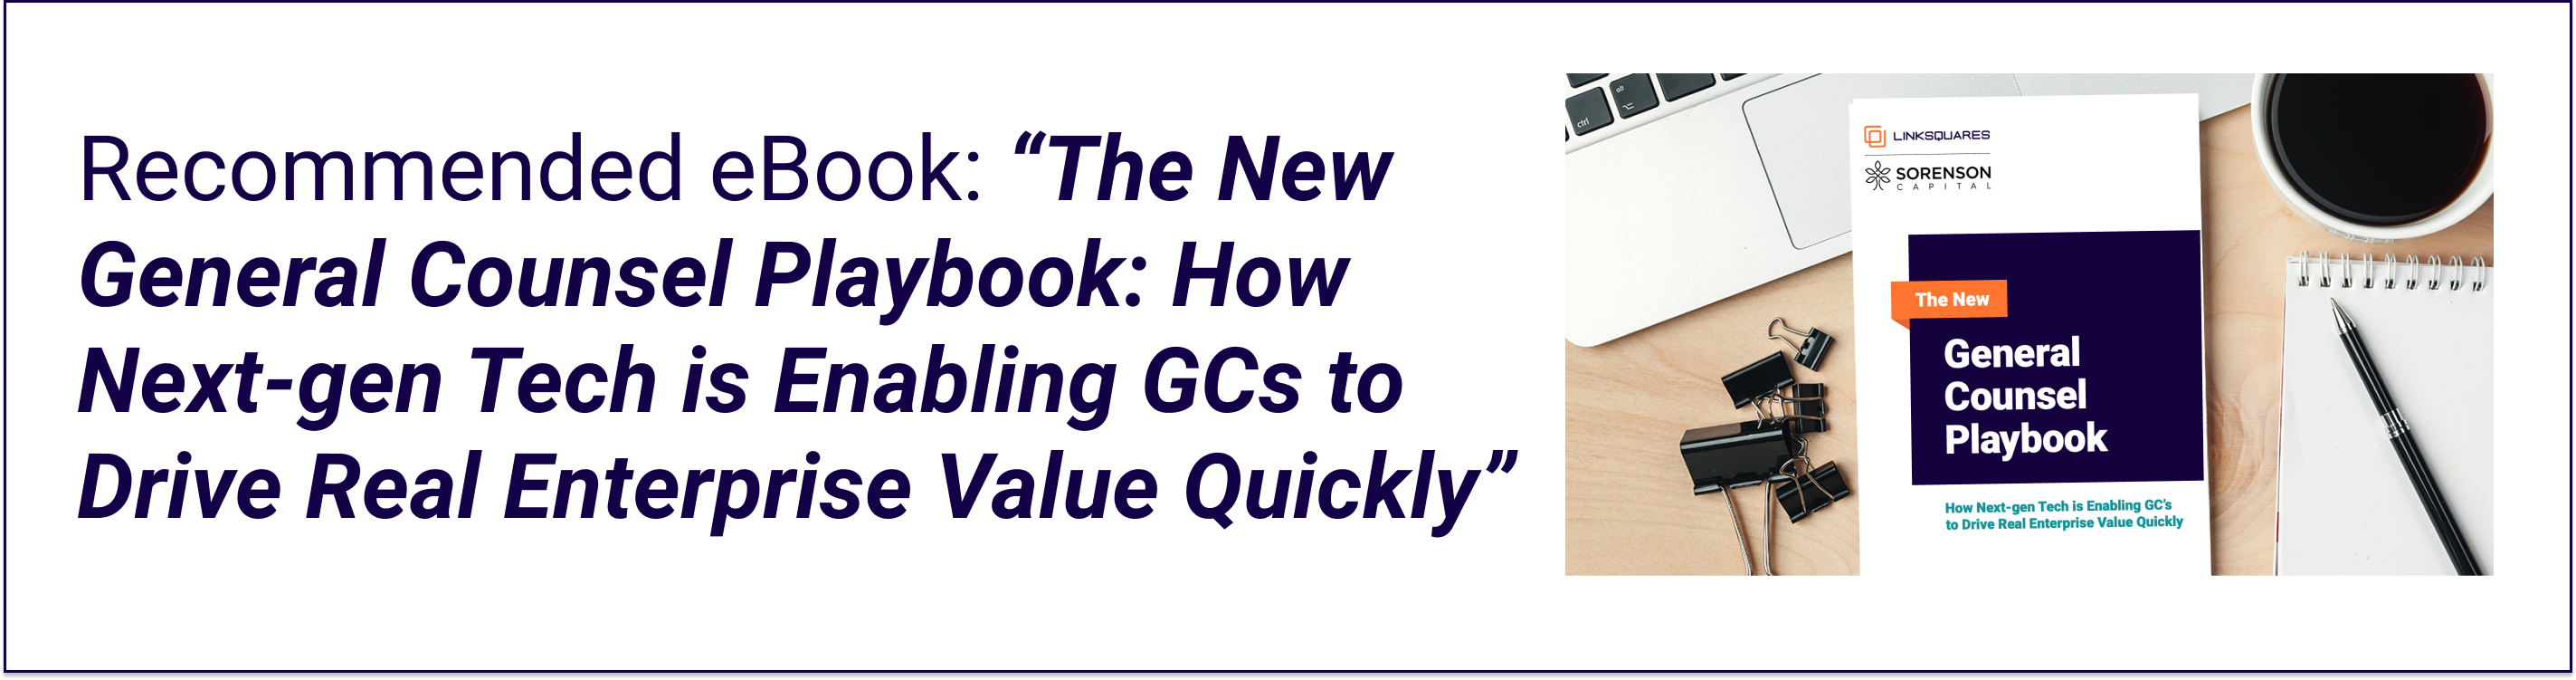 The New General Counsel Playbook